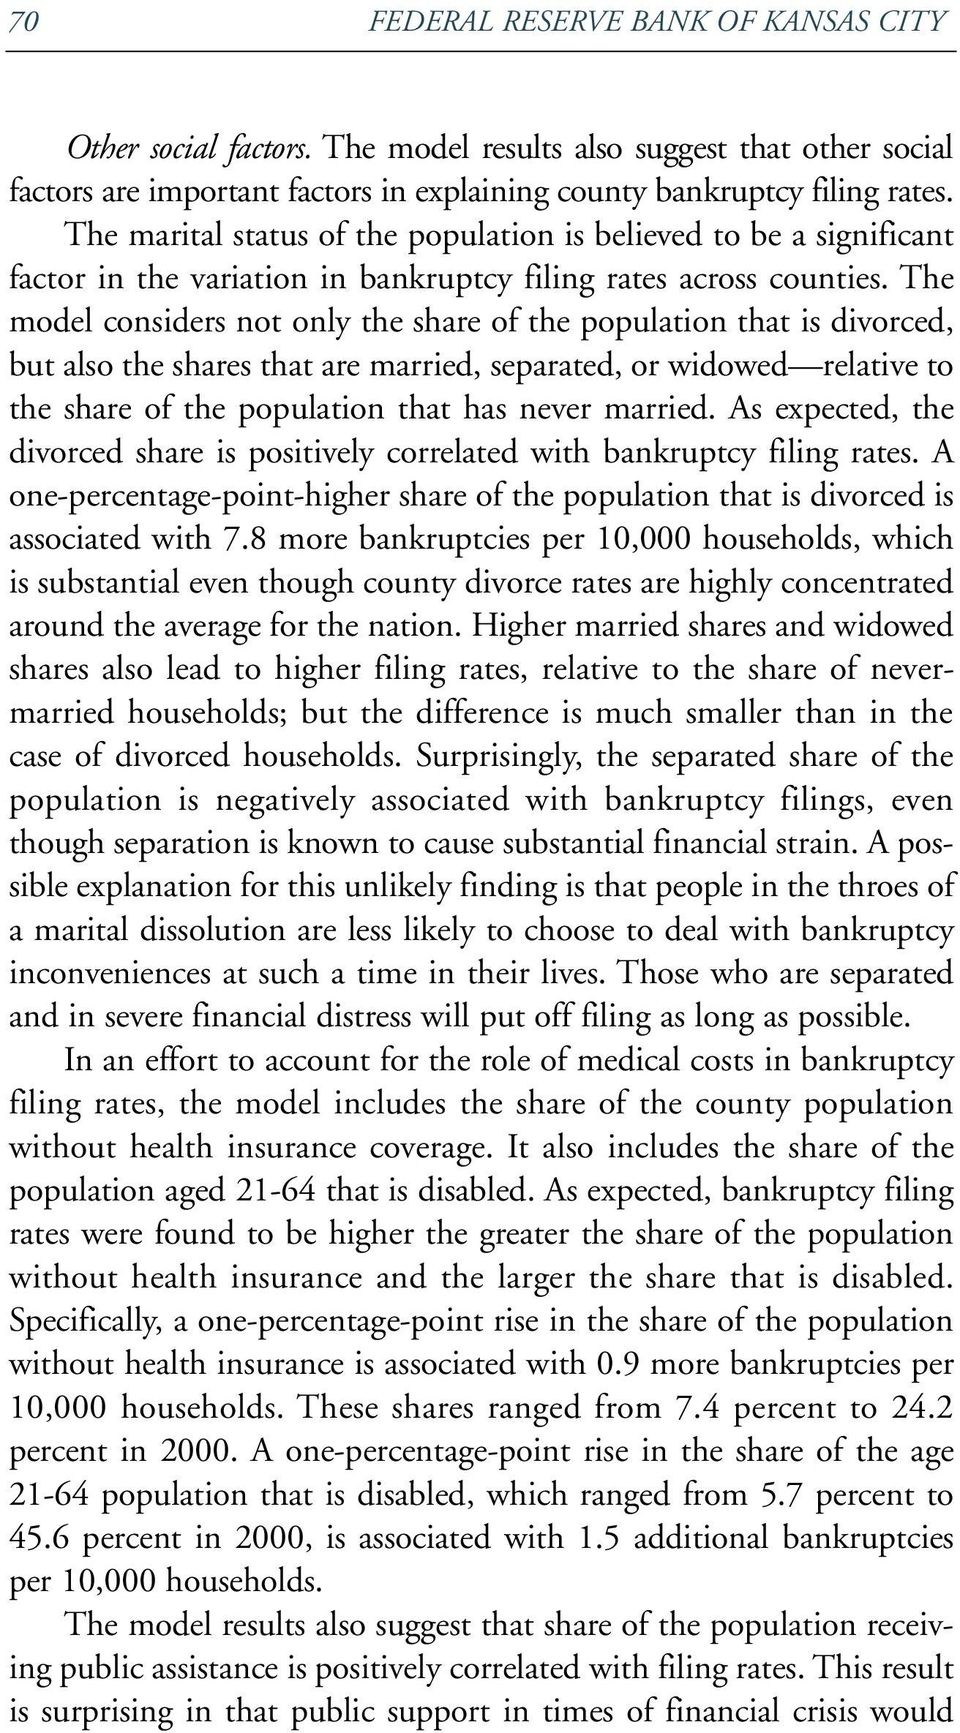 The model considers not only the share of the population that is divorced, but also the shares that are married, separated, or widowed relative to the share of the population that has never married.